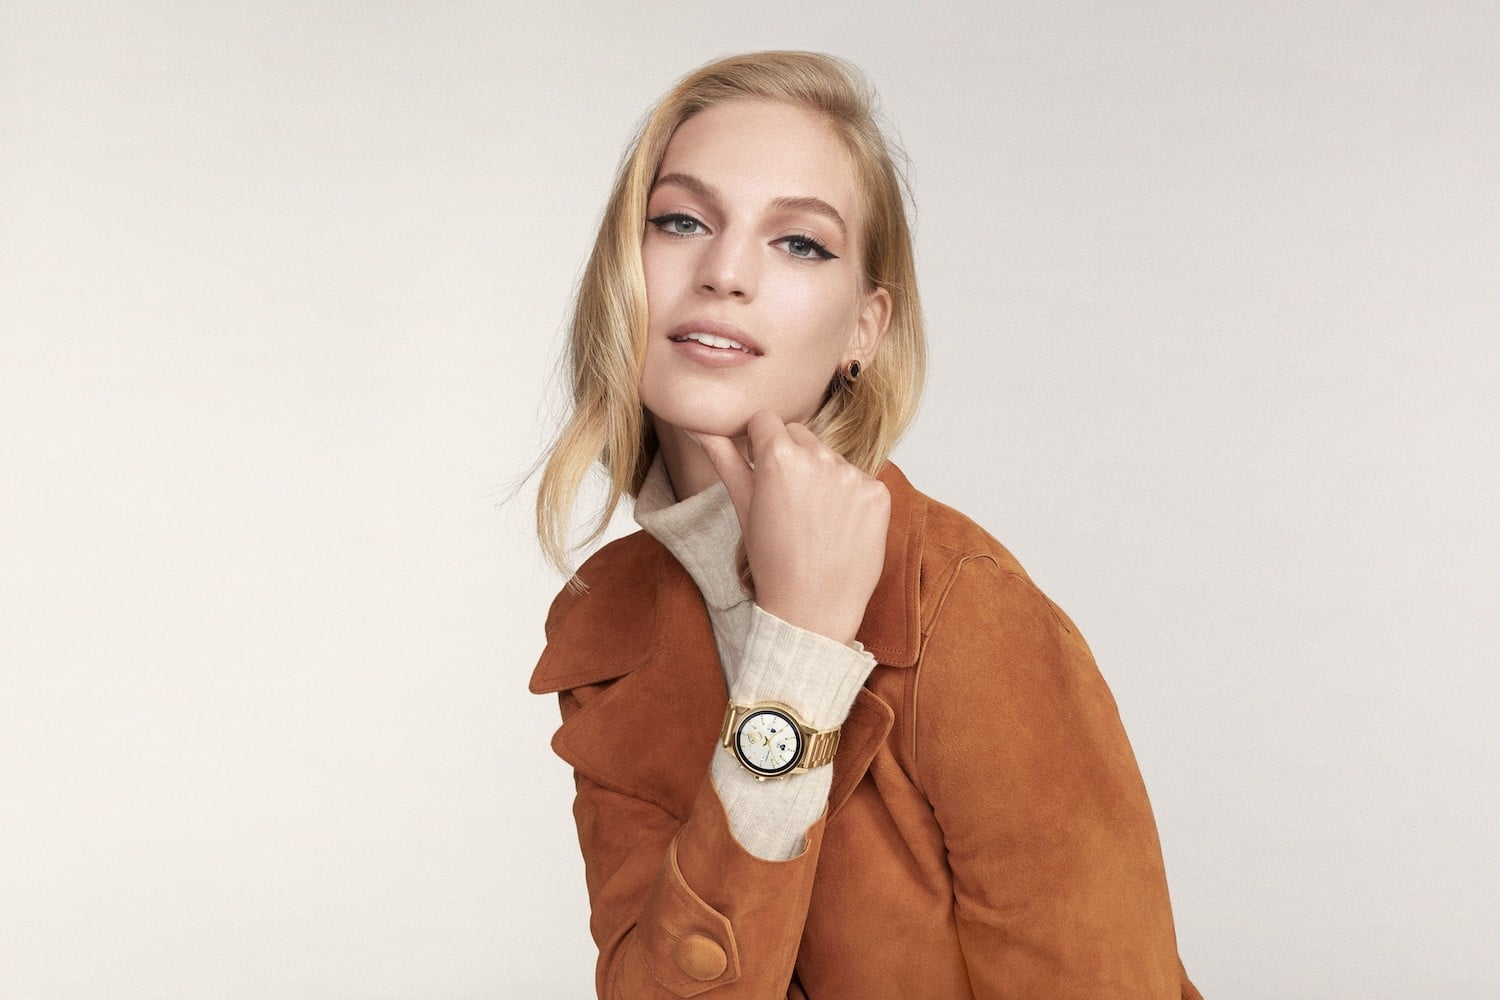 db36143c967 Tory Burch Branches Out Into Wear OS Smartwatches With the  395 Gigi ...